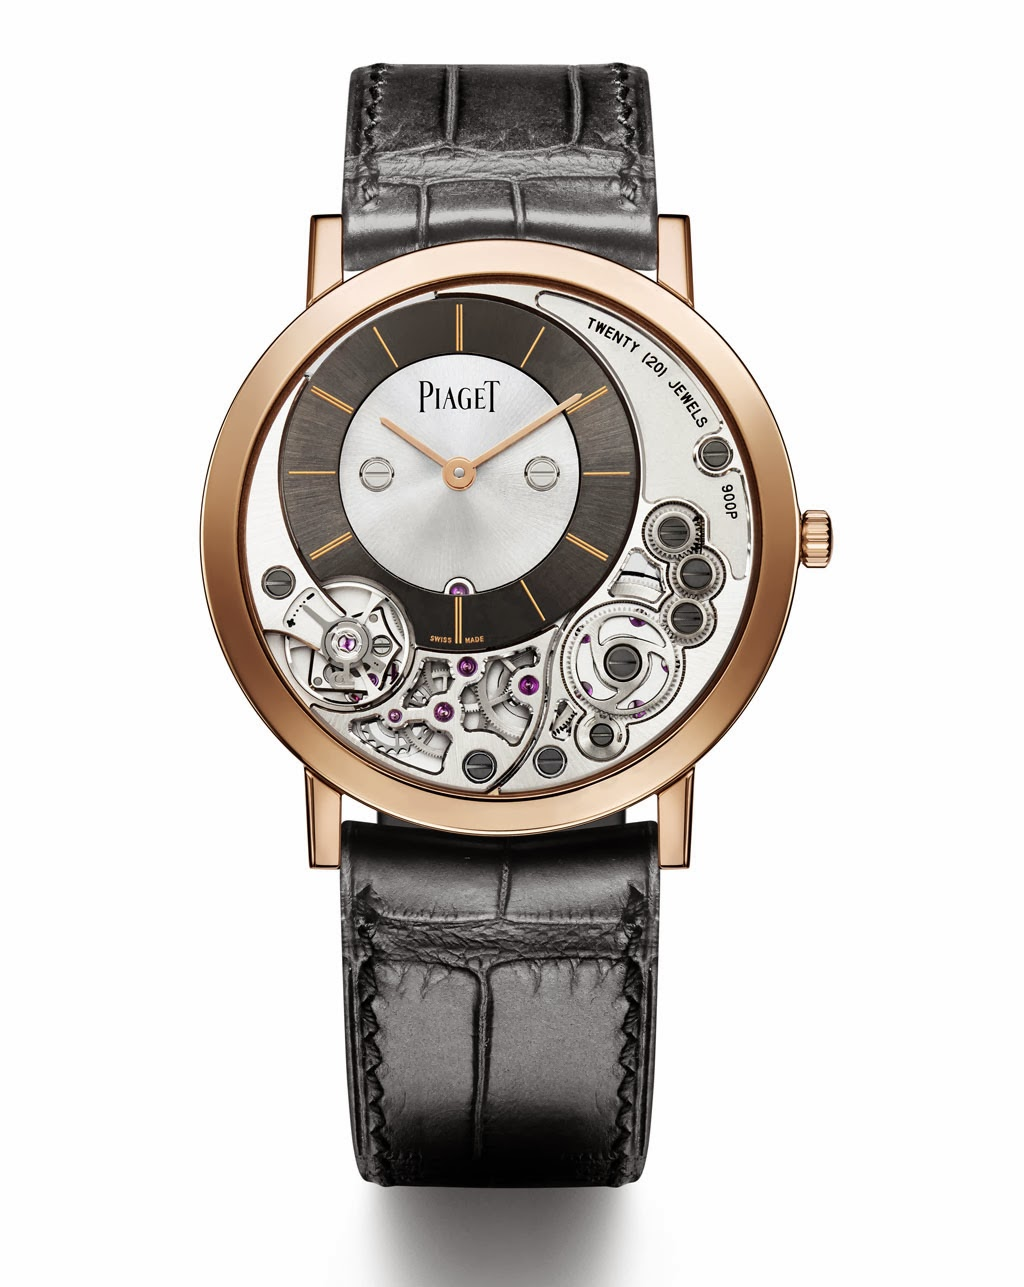 SIHH 2014: Piaget's Altiplano 38mm 900P Pink Gold and High ...